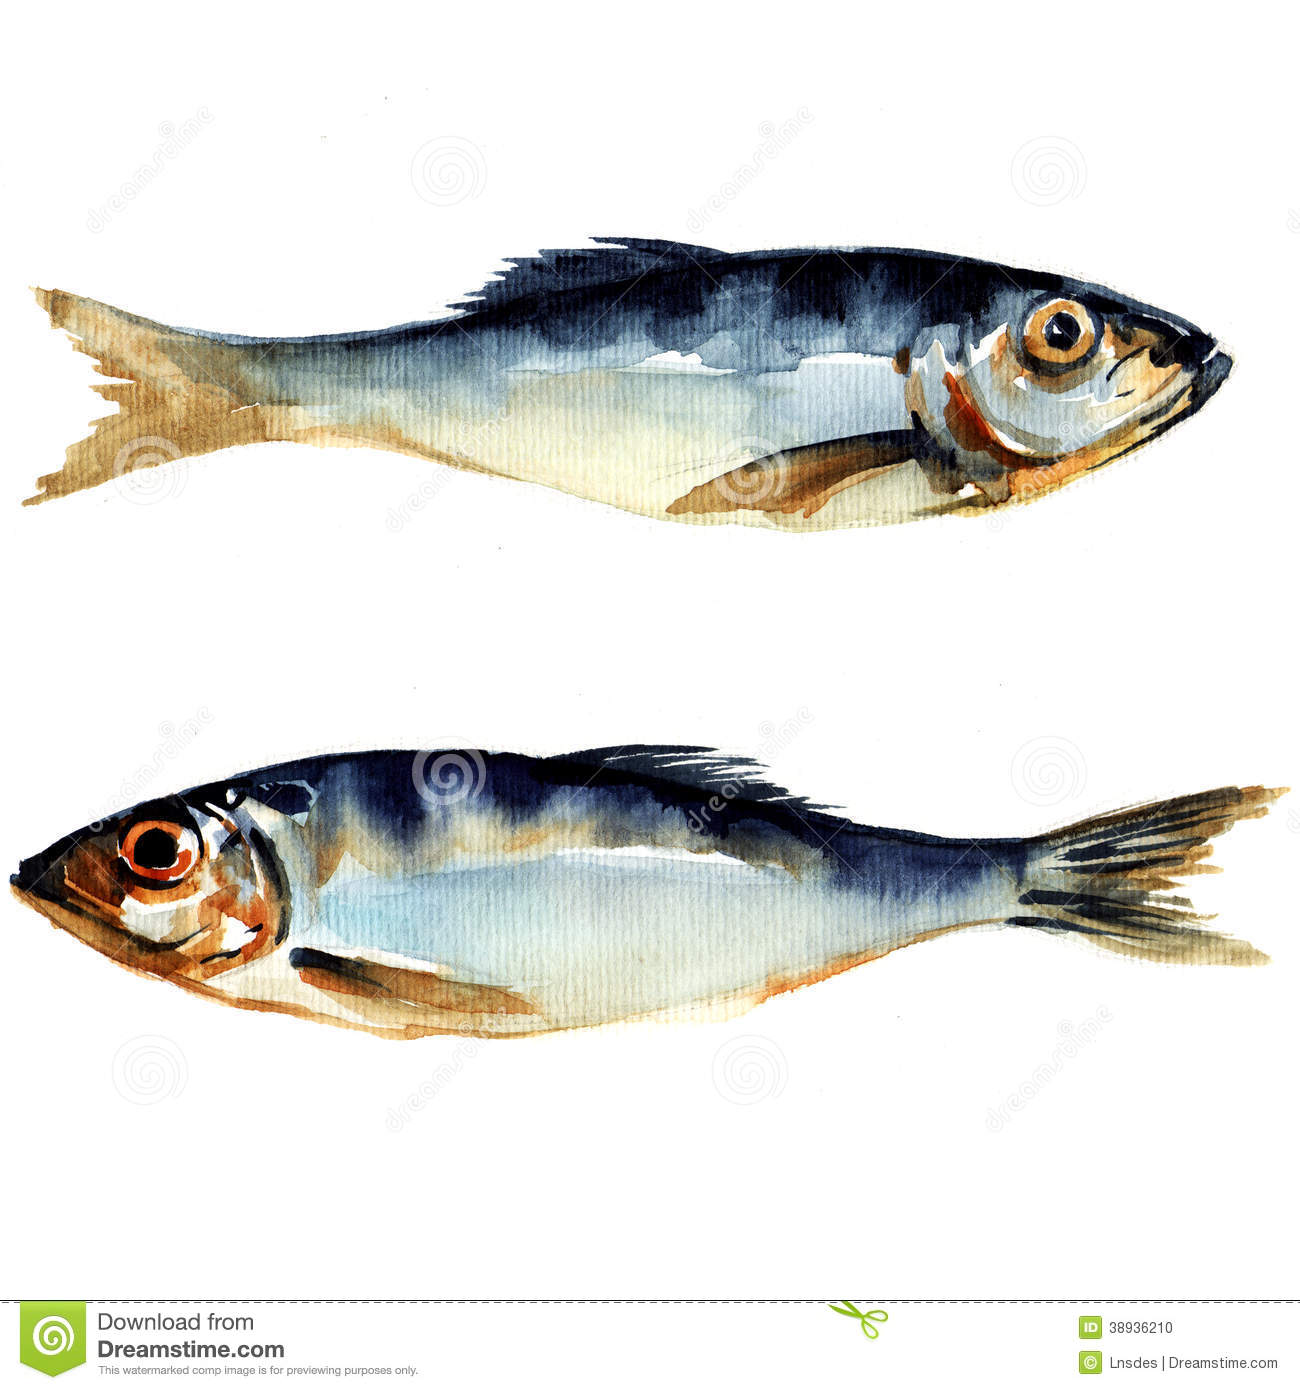 Herring fish watercolor painting stock illustration for How to paint a fish